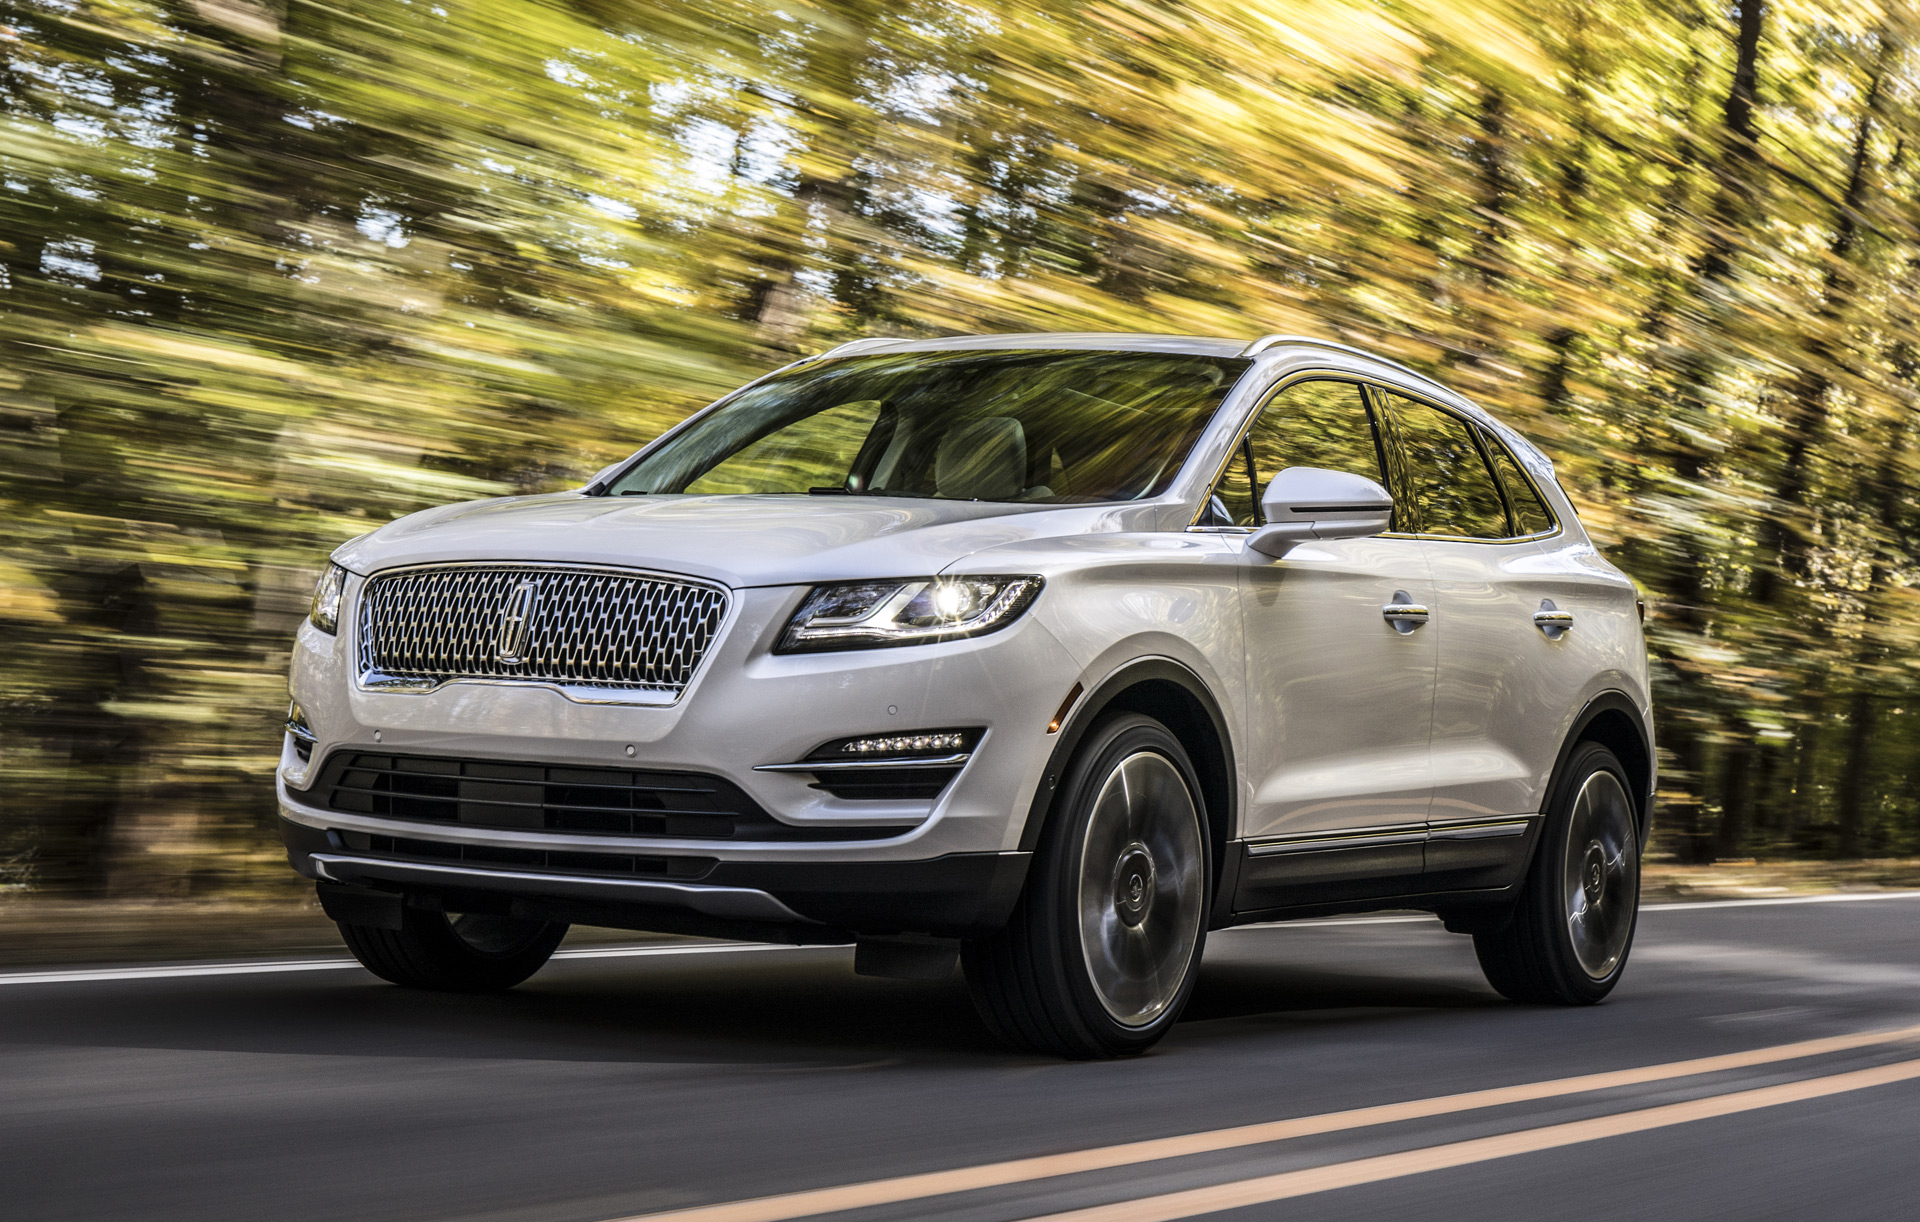 2018 Ford Expedition Review >> 2019 Lincoln MKC preview